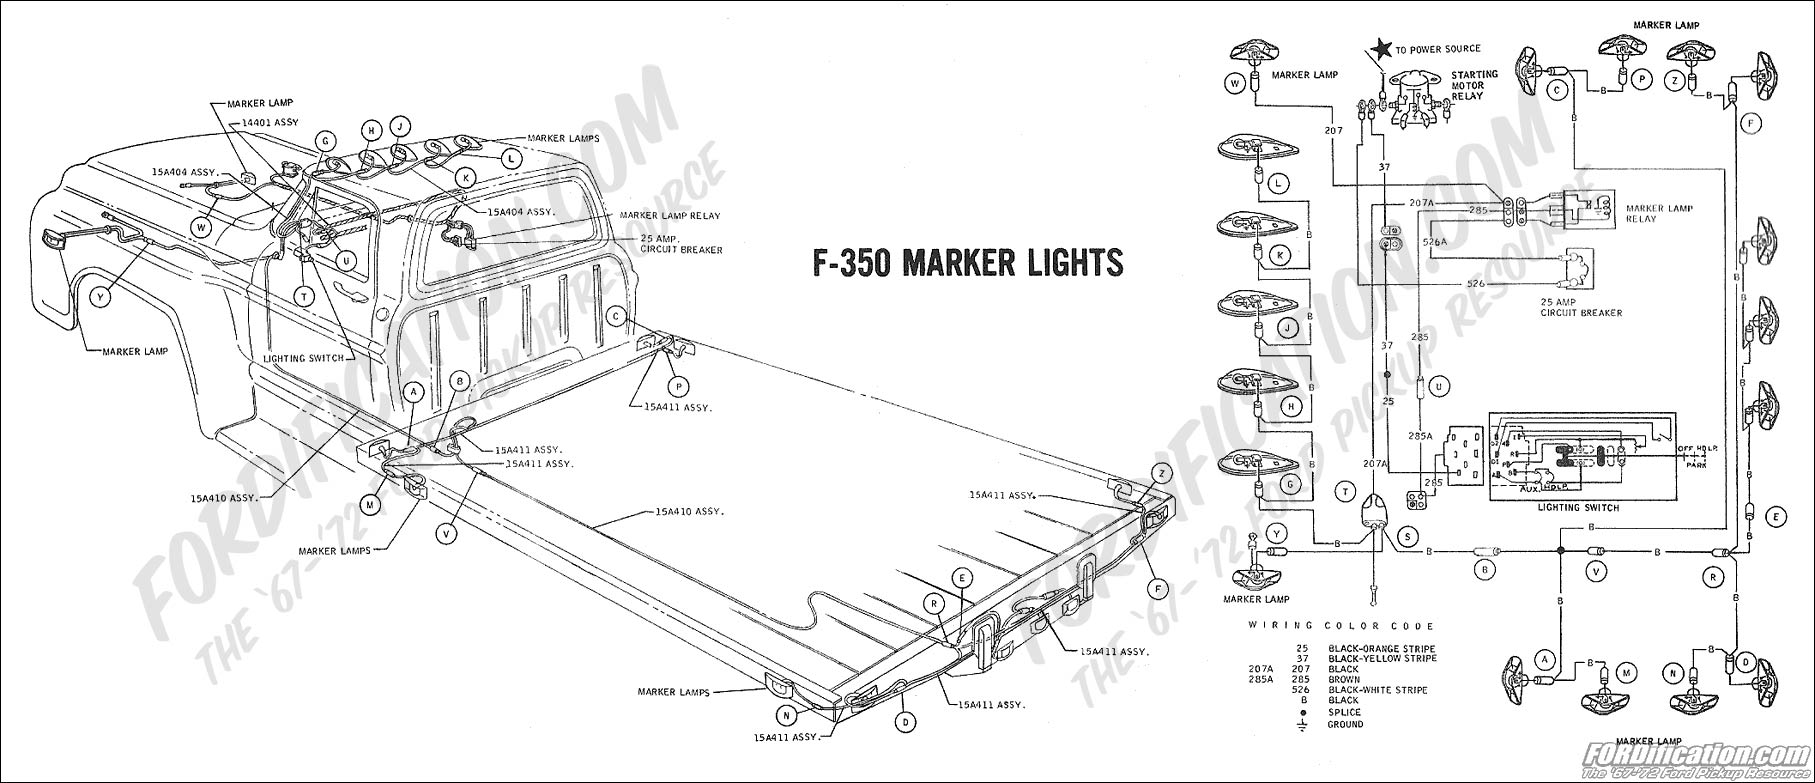 trailer light wiring diagram ford f350 with Pickup C Er Wiring Harness on 1111092 Any Tips For Replacing Shift Lock Solenoid additionally 37oje Turning Signals Emergency Flasher Brake Lights Stopped further 2000 Ford F350 V10 Transmission Range Selector Wiring Diagram furthermore Motorcycle Fog Light Wiring Diagram likewise Trailer Wiring Excursion Related Ugg 413.